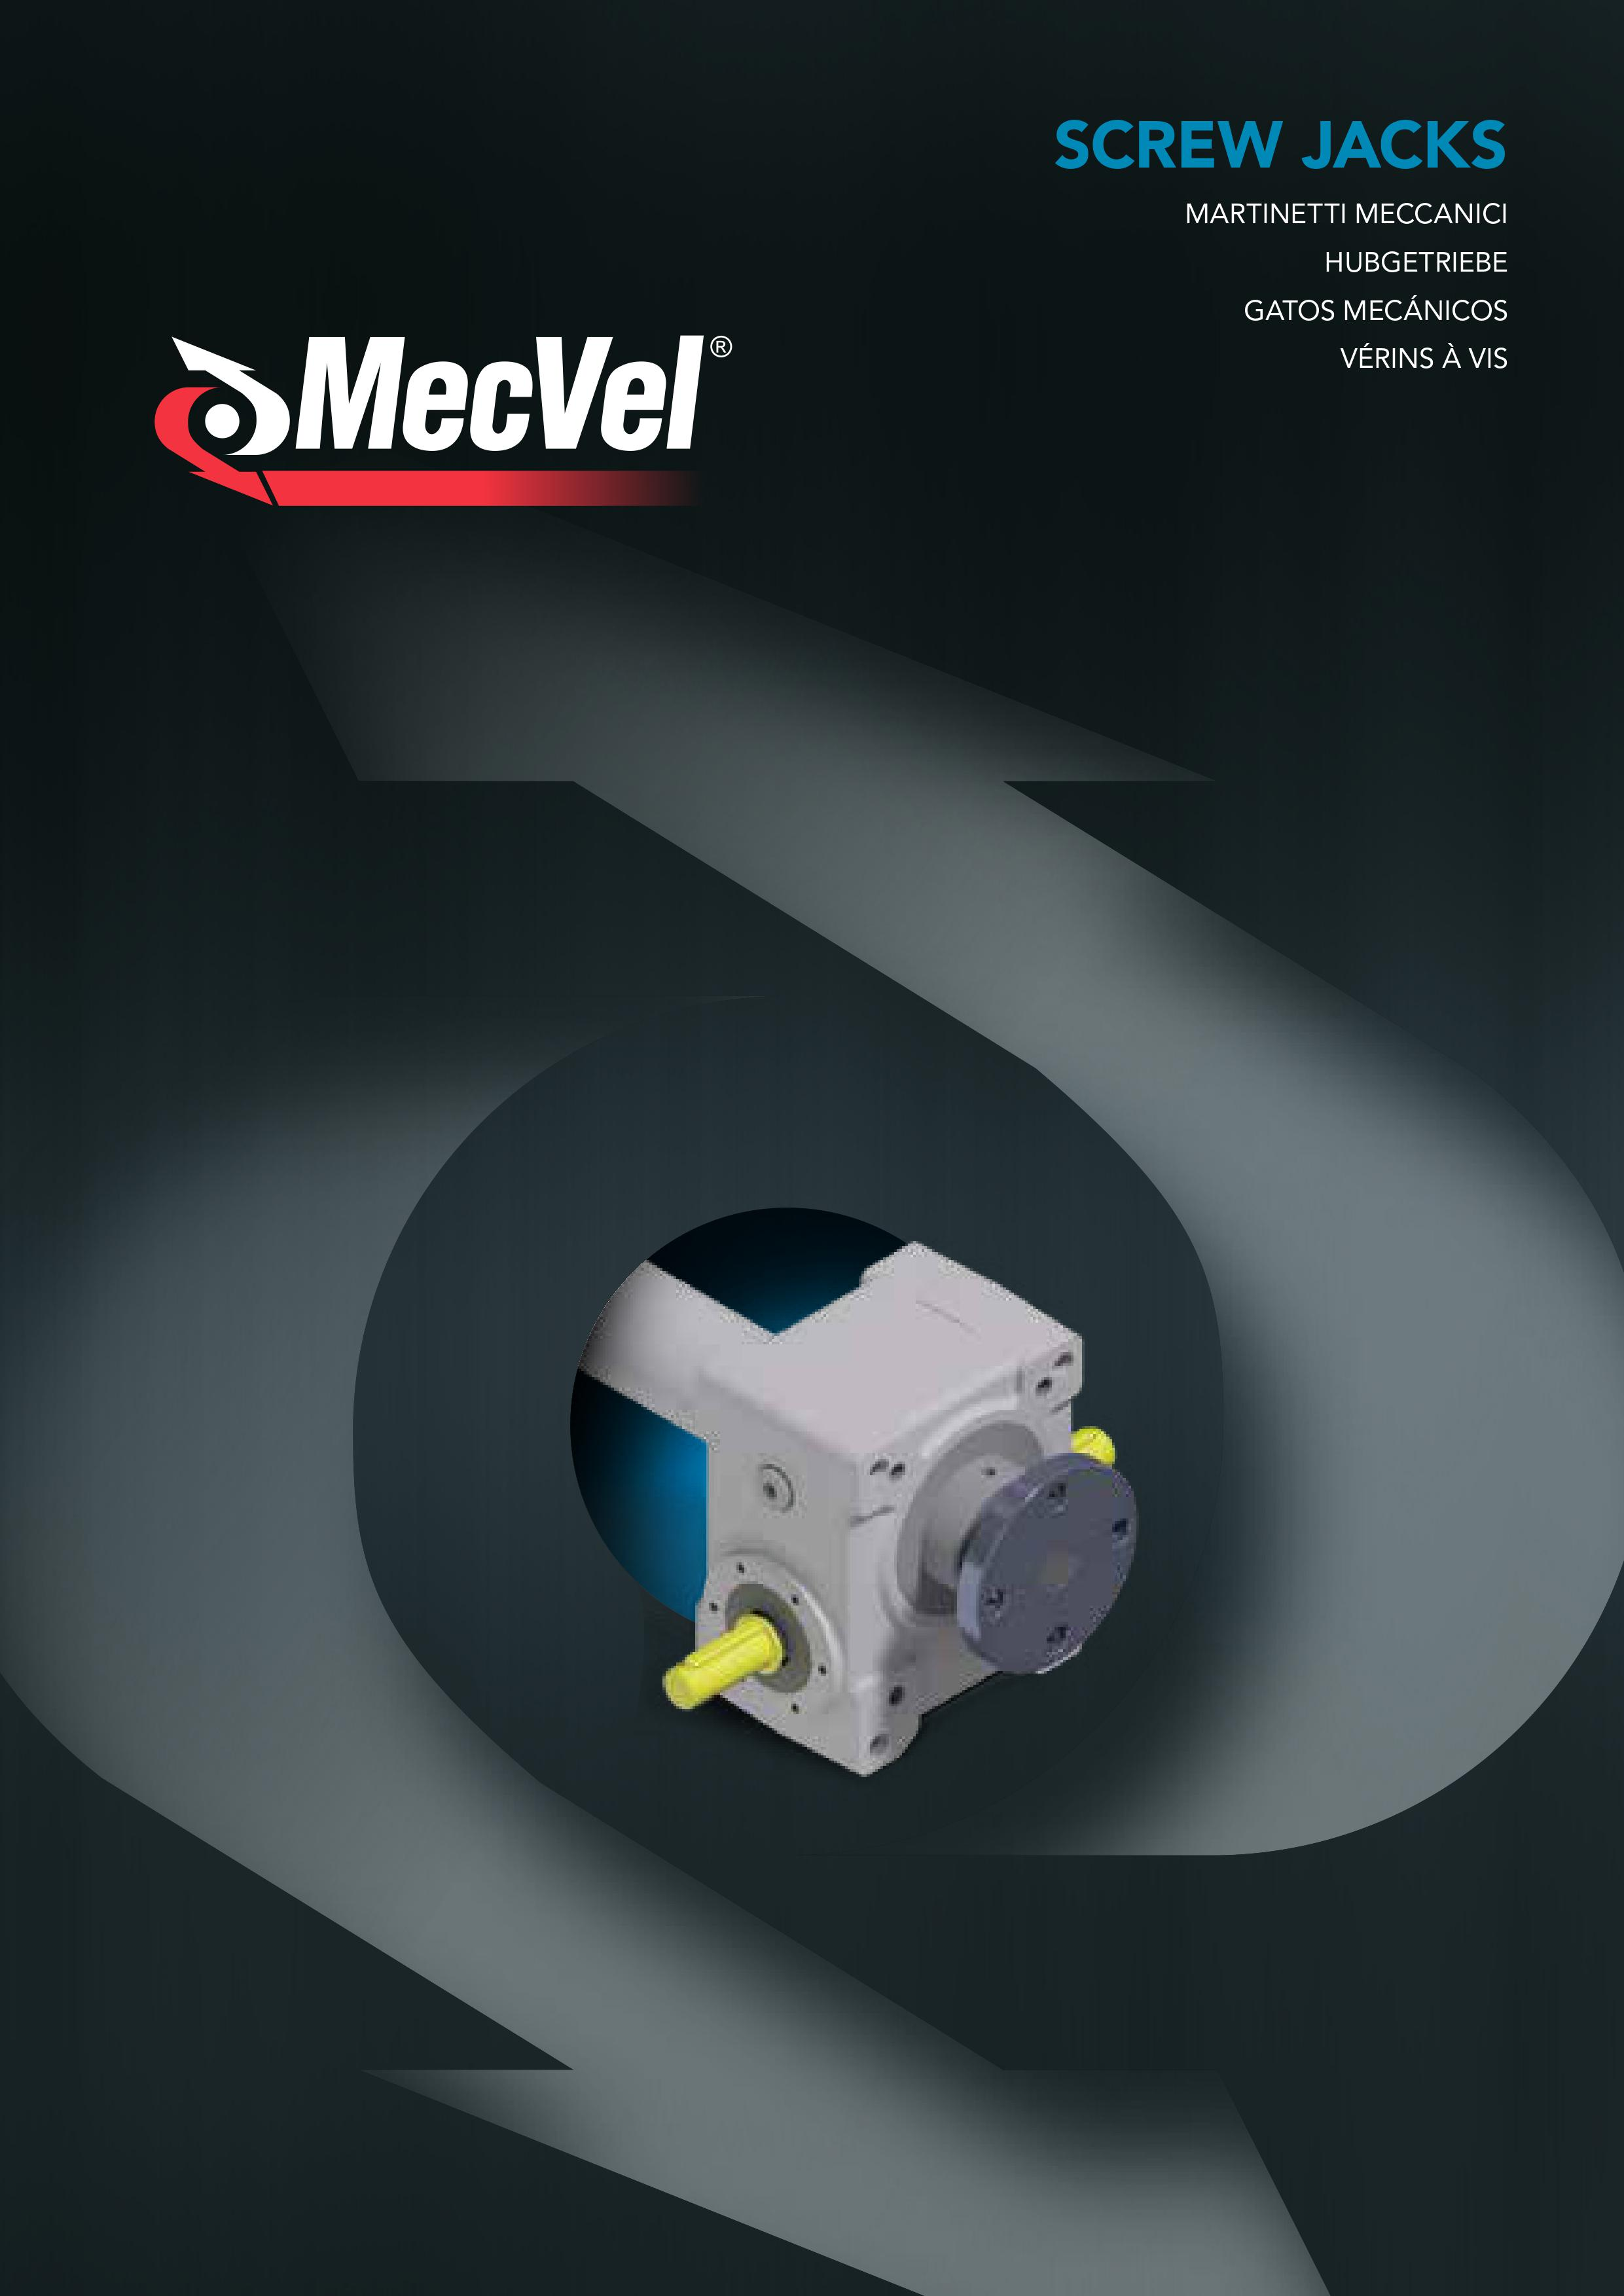 MecVel screw jacks range